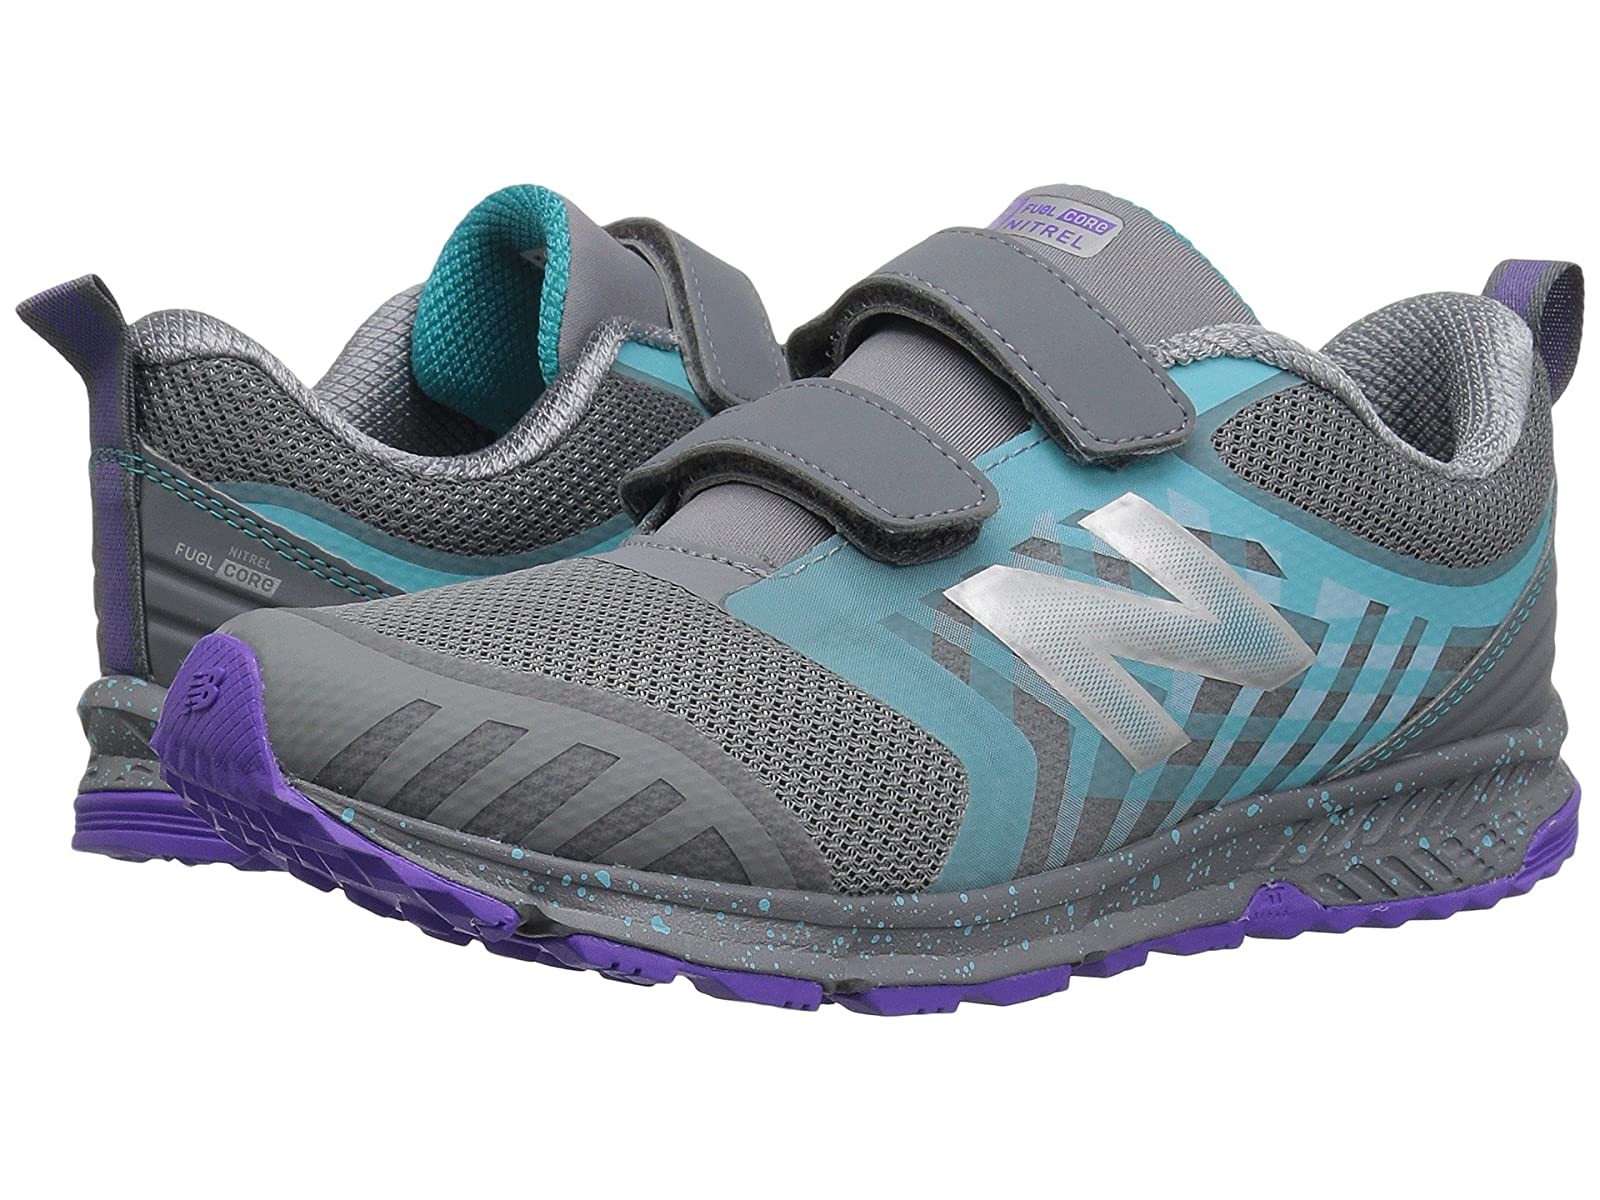 New Balance Kids FuelCore NITREL (Little Kid/Big Kid)Cheap and distinctive eye-catching shoes